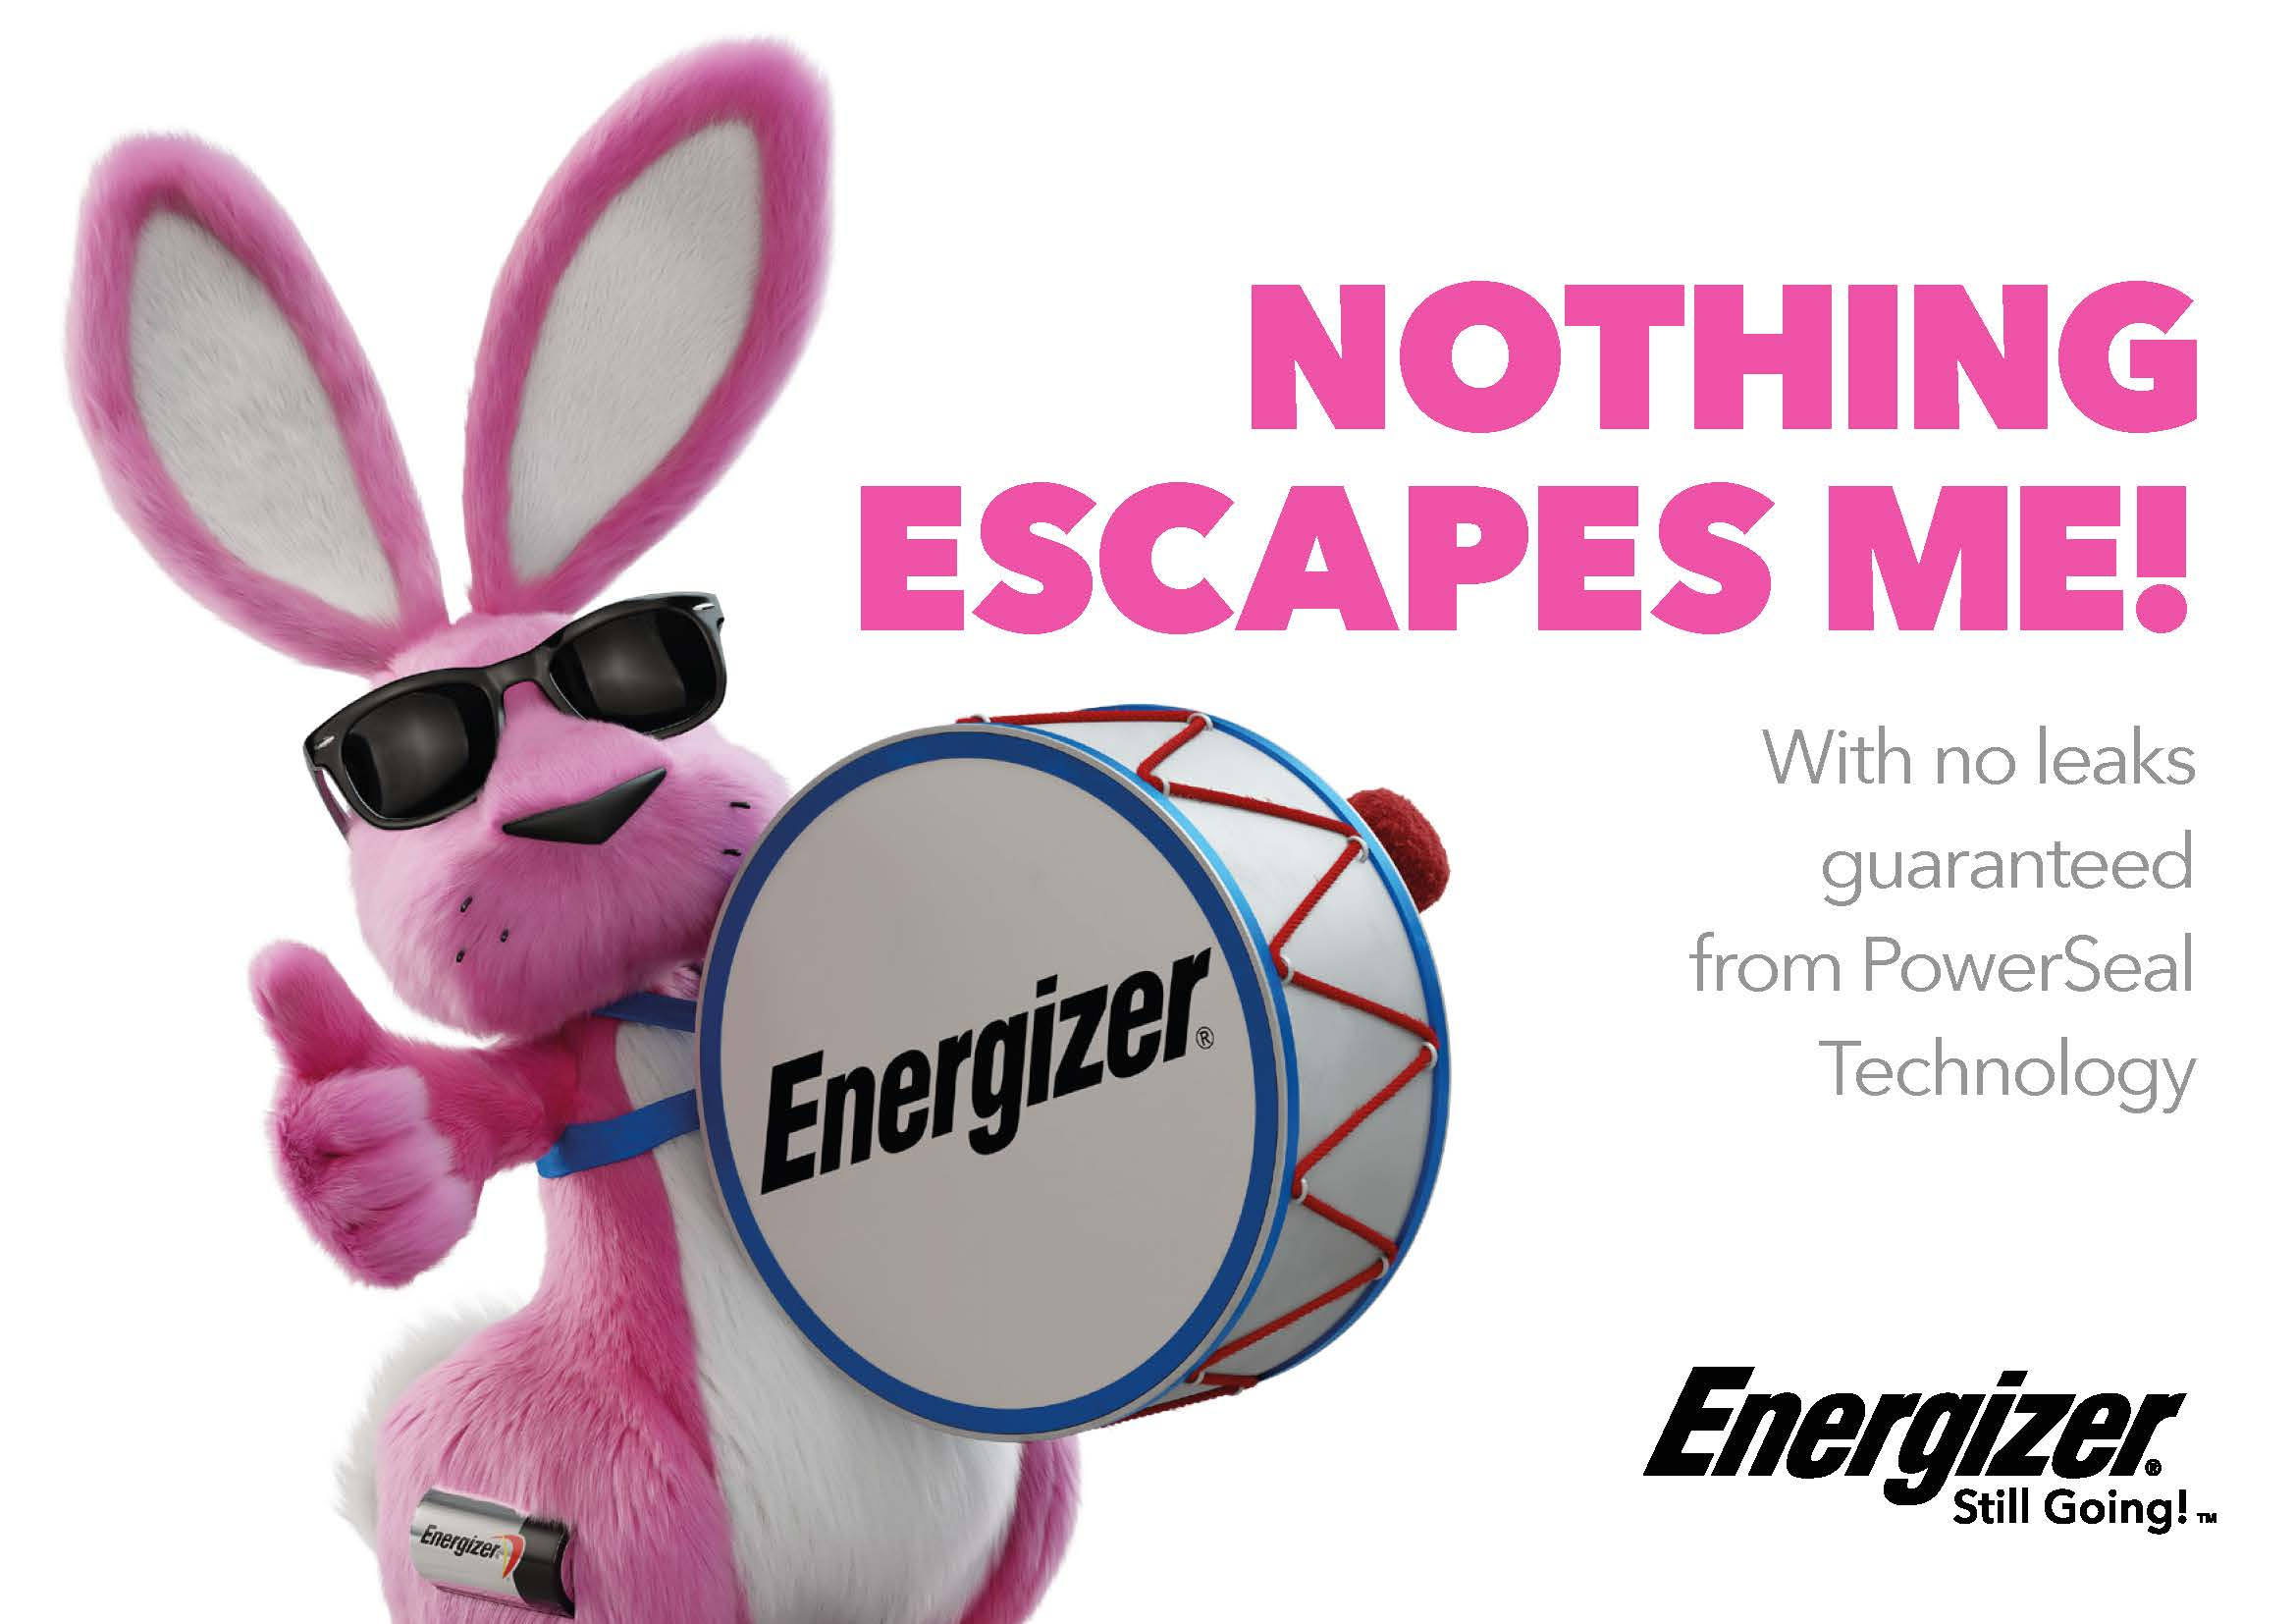 Energizer20Innovation_Tech_Page_1